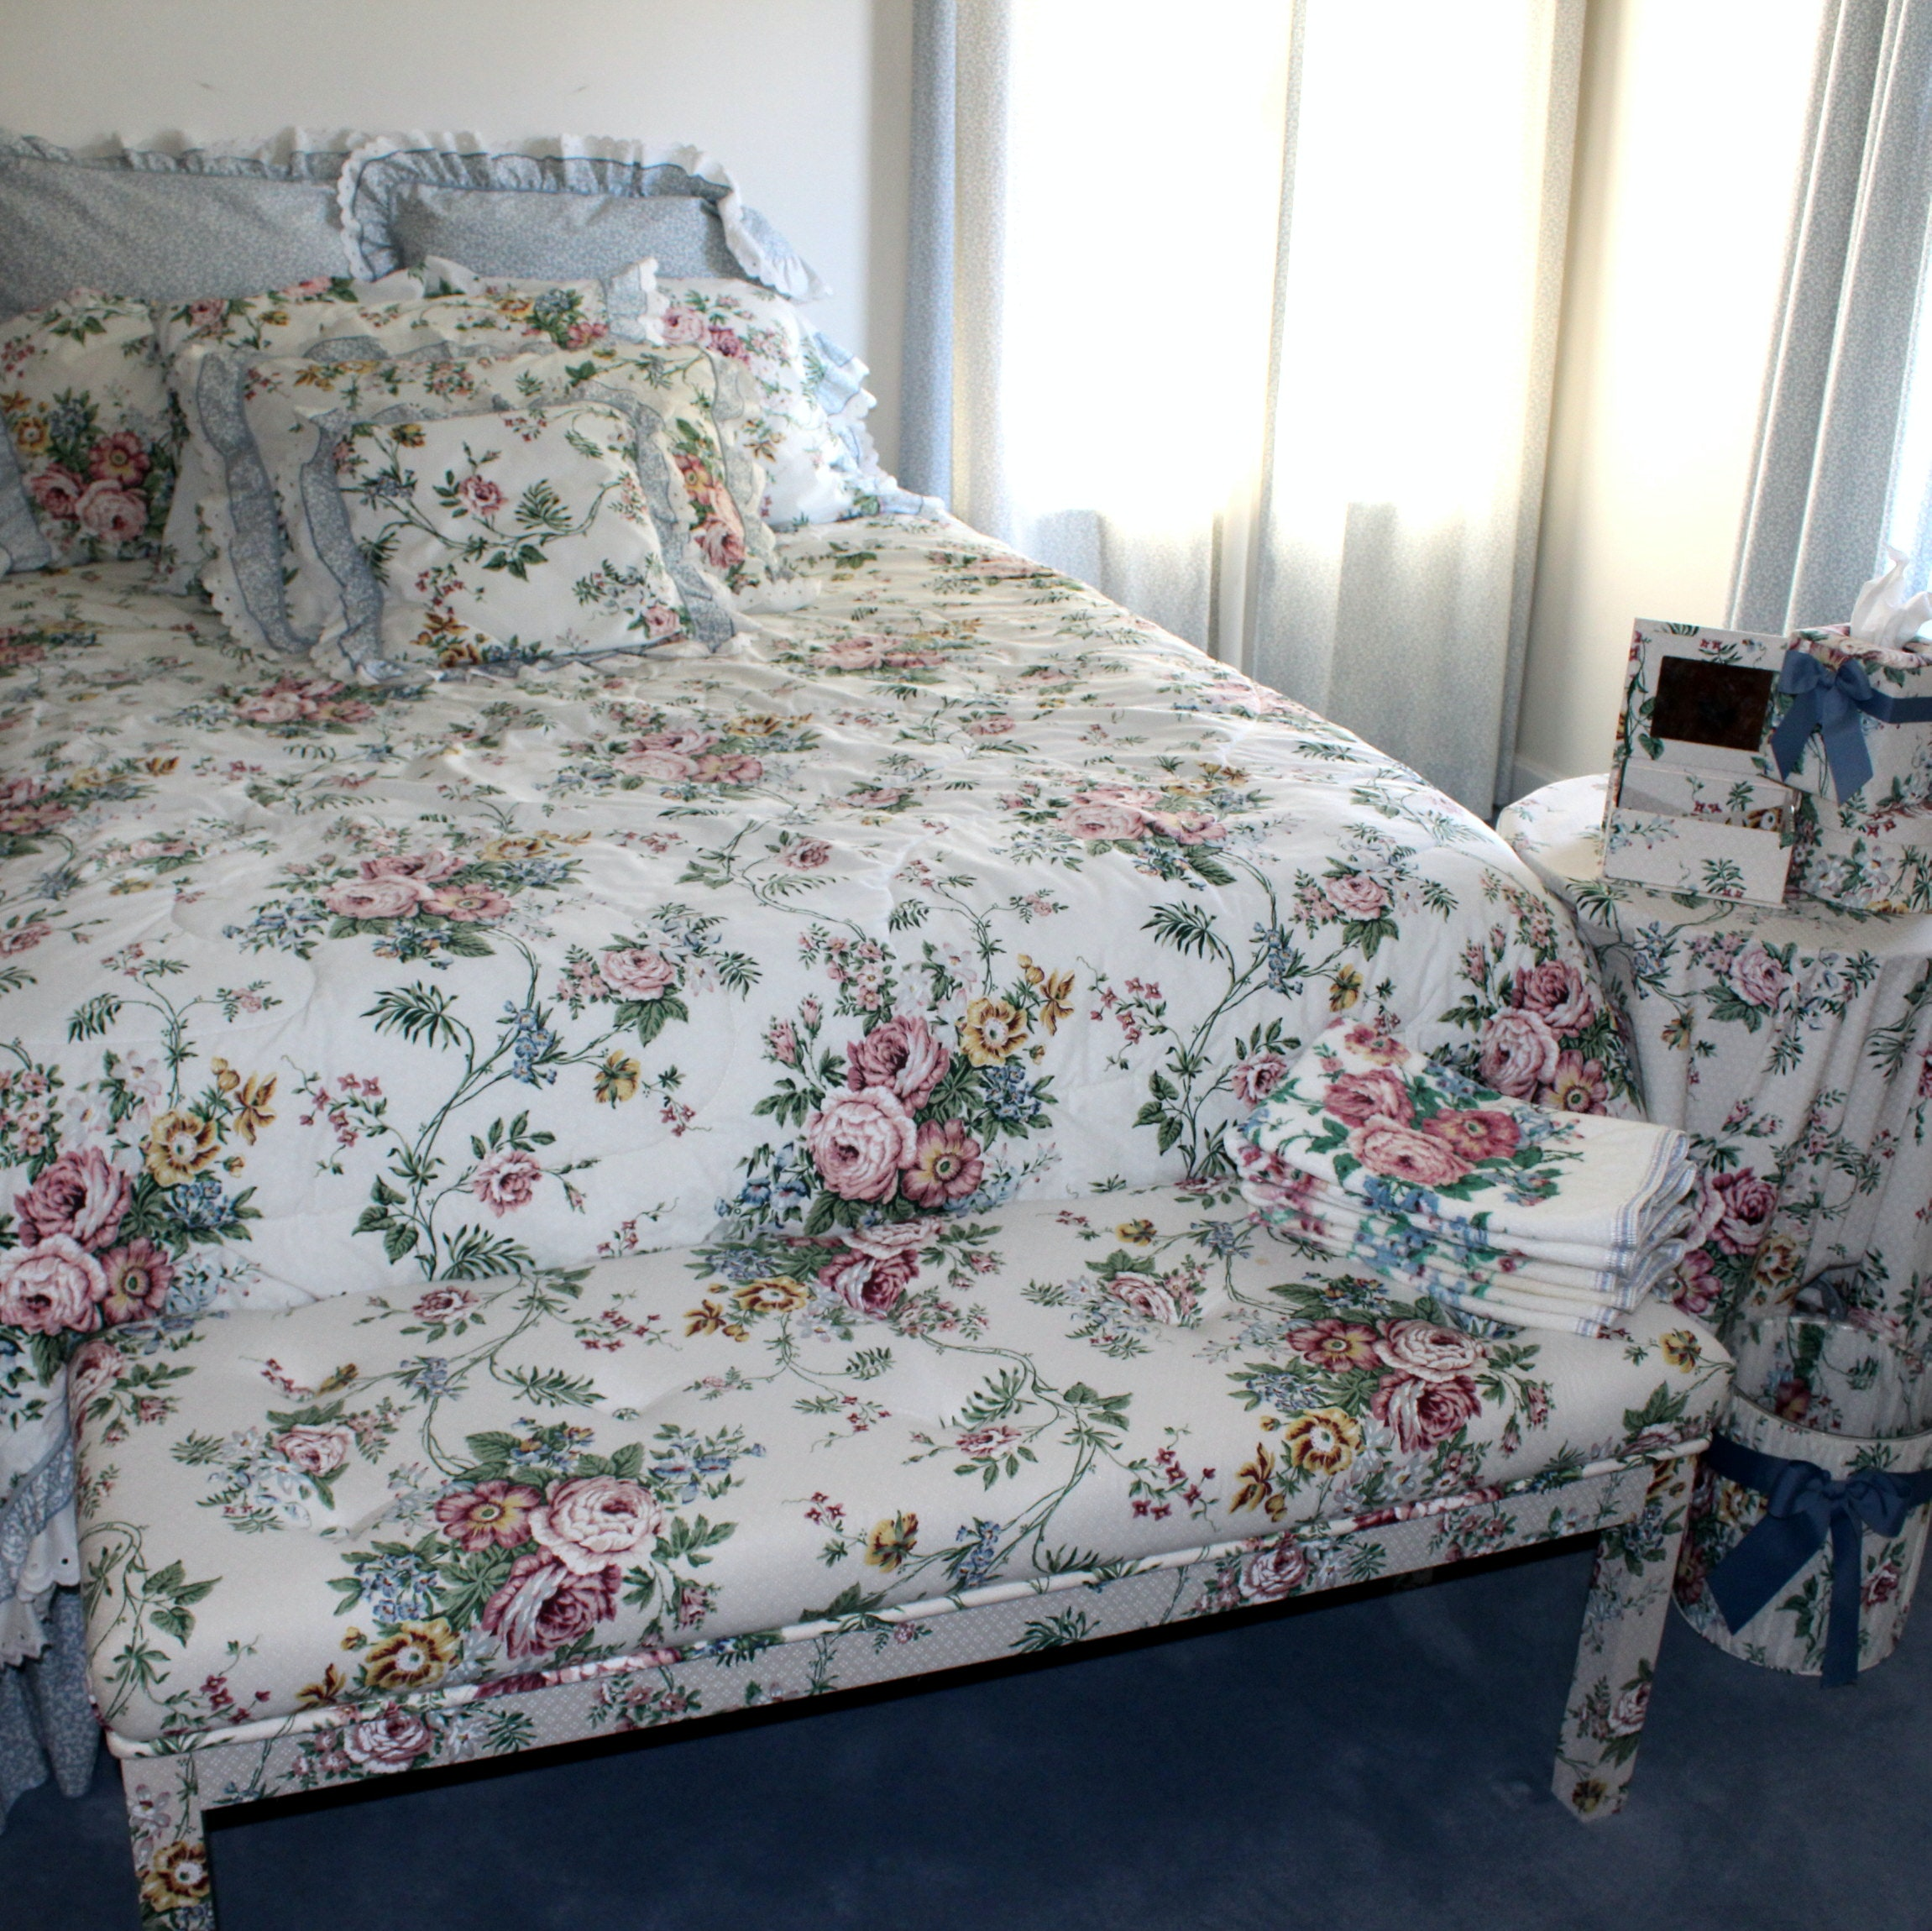 Floral Bedding, Bench, and Accessories